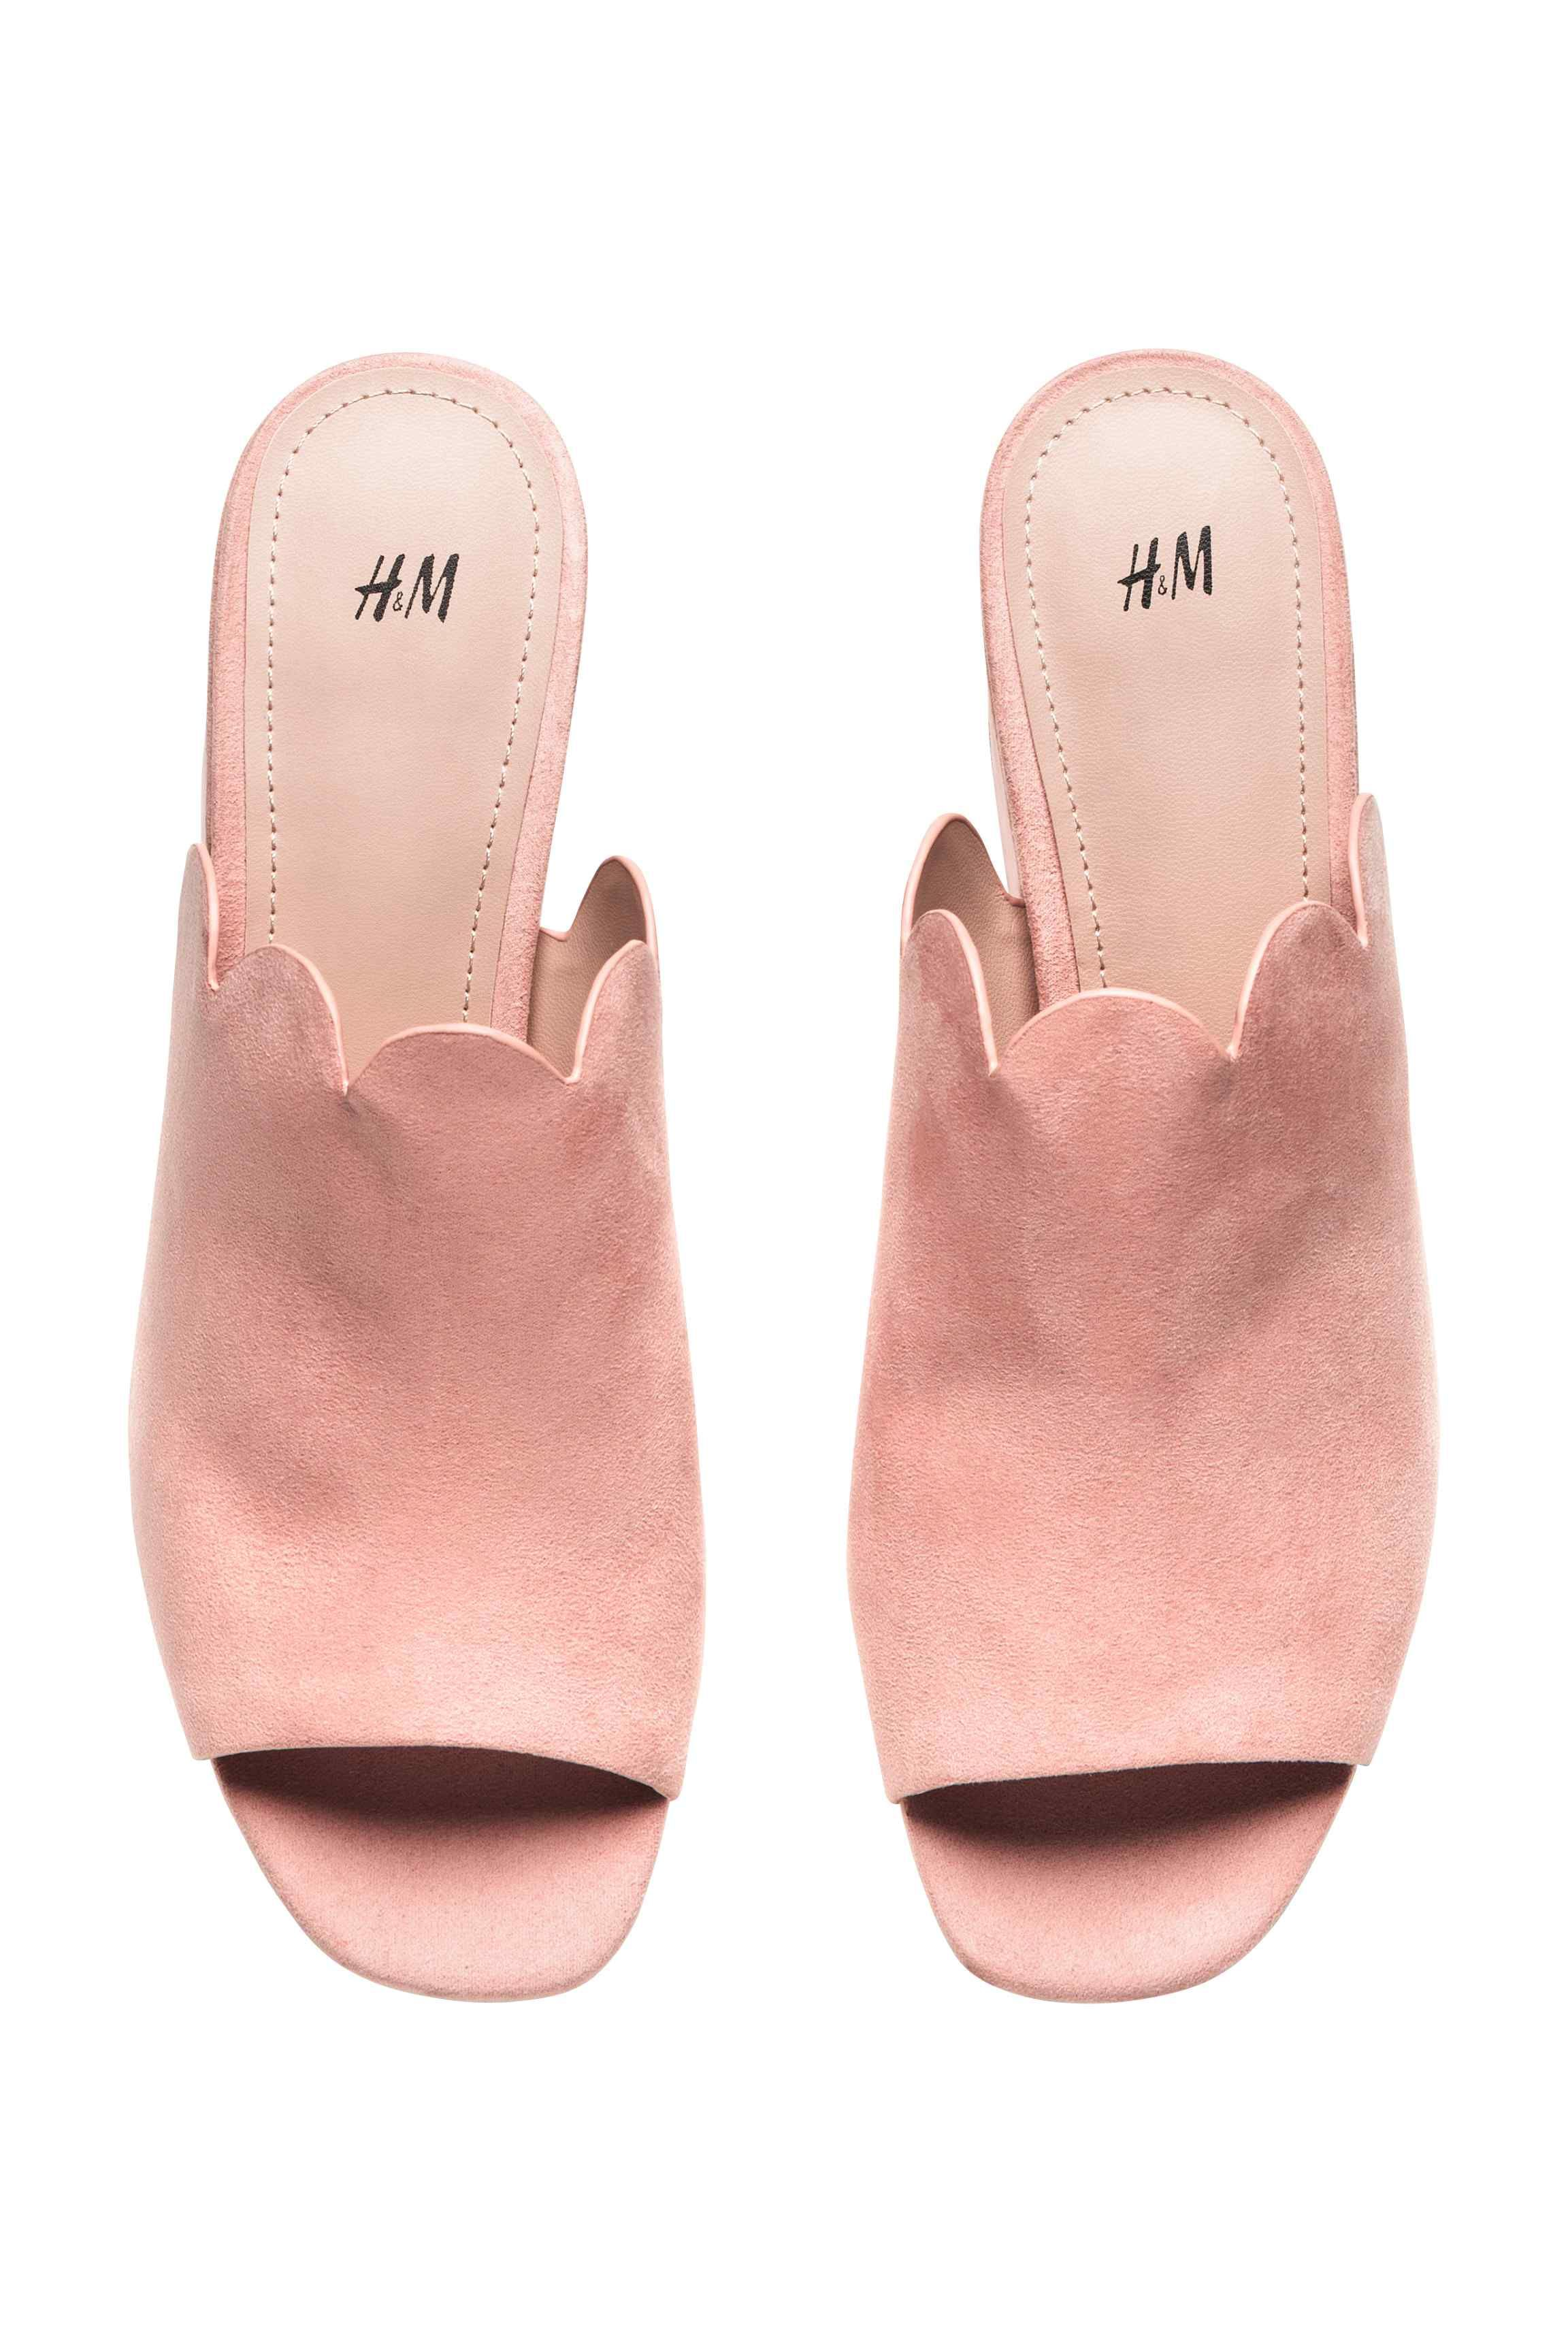 Sandalias Sin For Made Shoes Yyb7v6fmig Cierrethese Are ygY7bf6